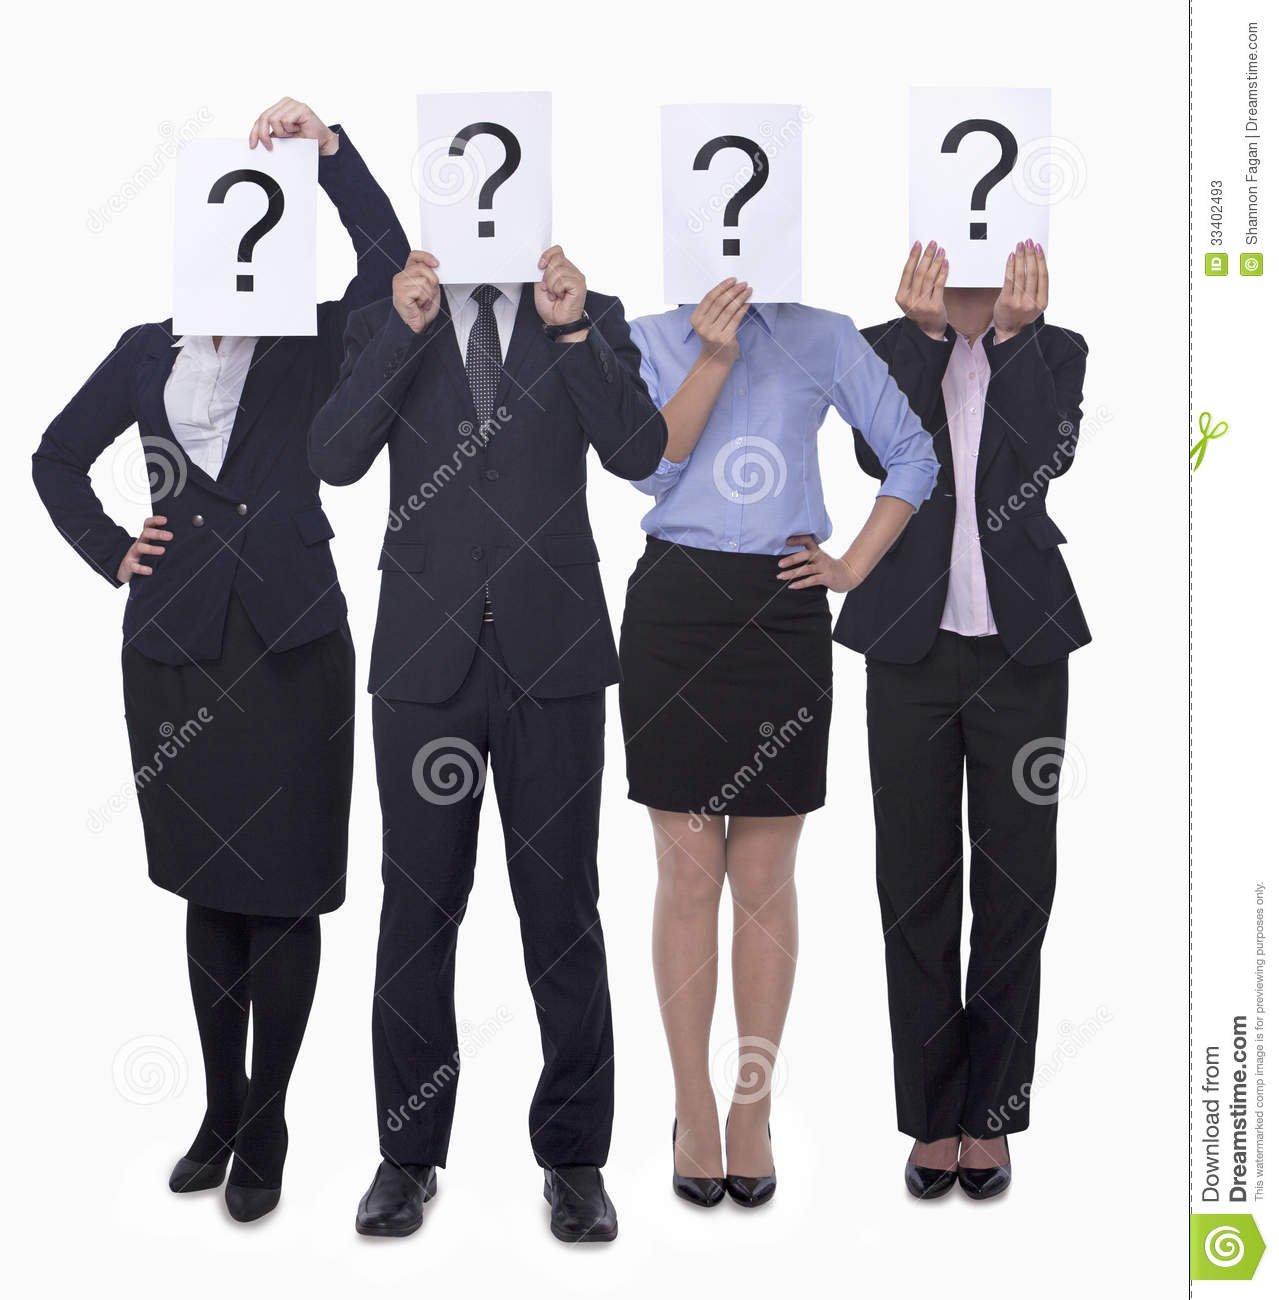 Four business people holding up paper with question mark, obscured face, studio shot